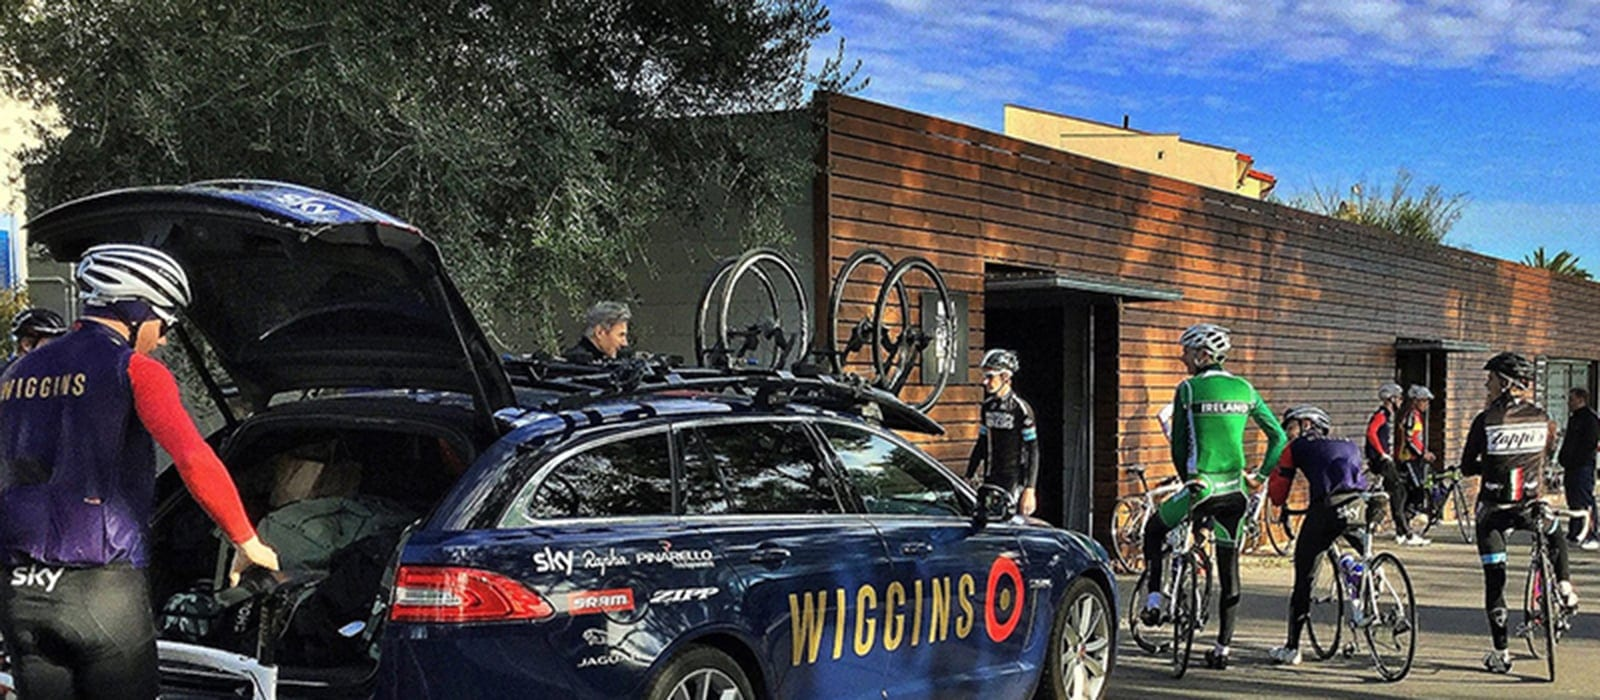 Team Wiggins riding out at Cambrils Sports Village